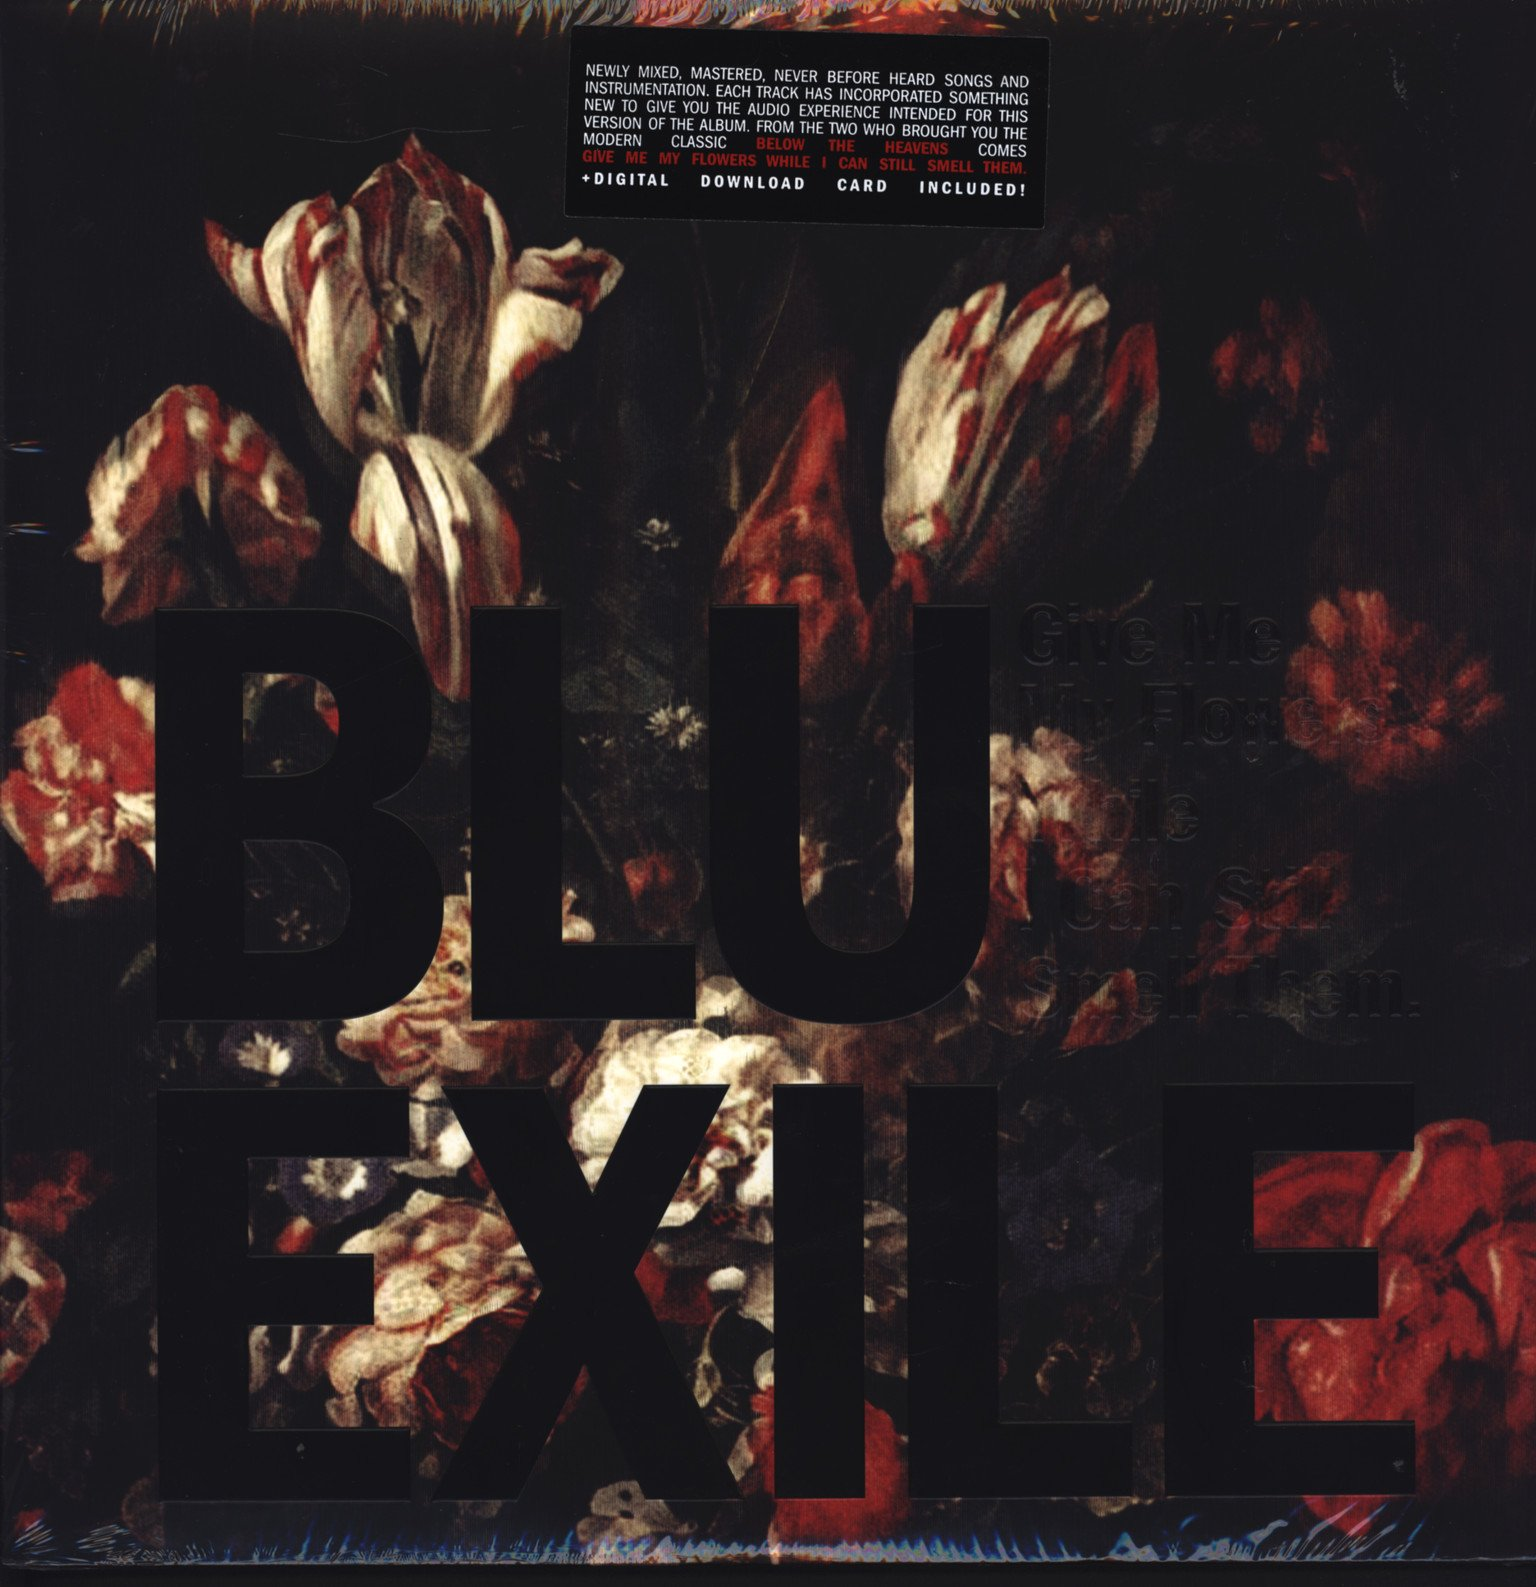 Blu And Exile-Give Me My Flowers While I Can Still Smell Them-CD-FLAC-2012-FiXIE